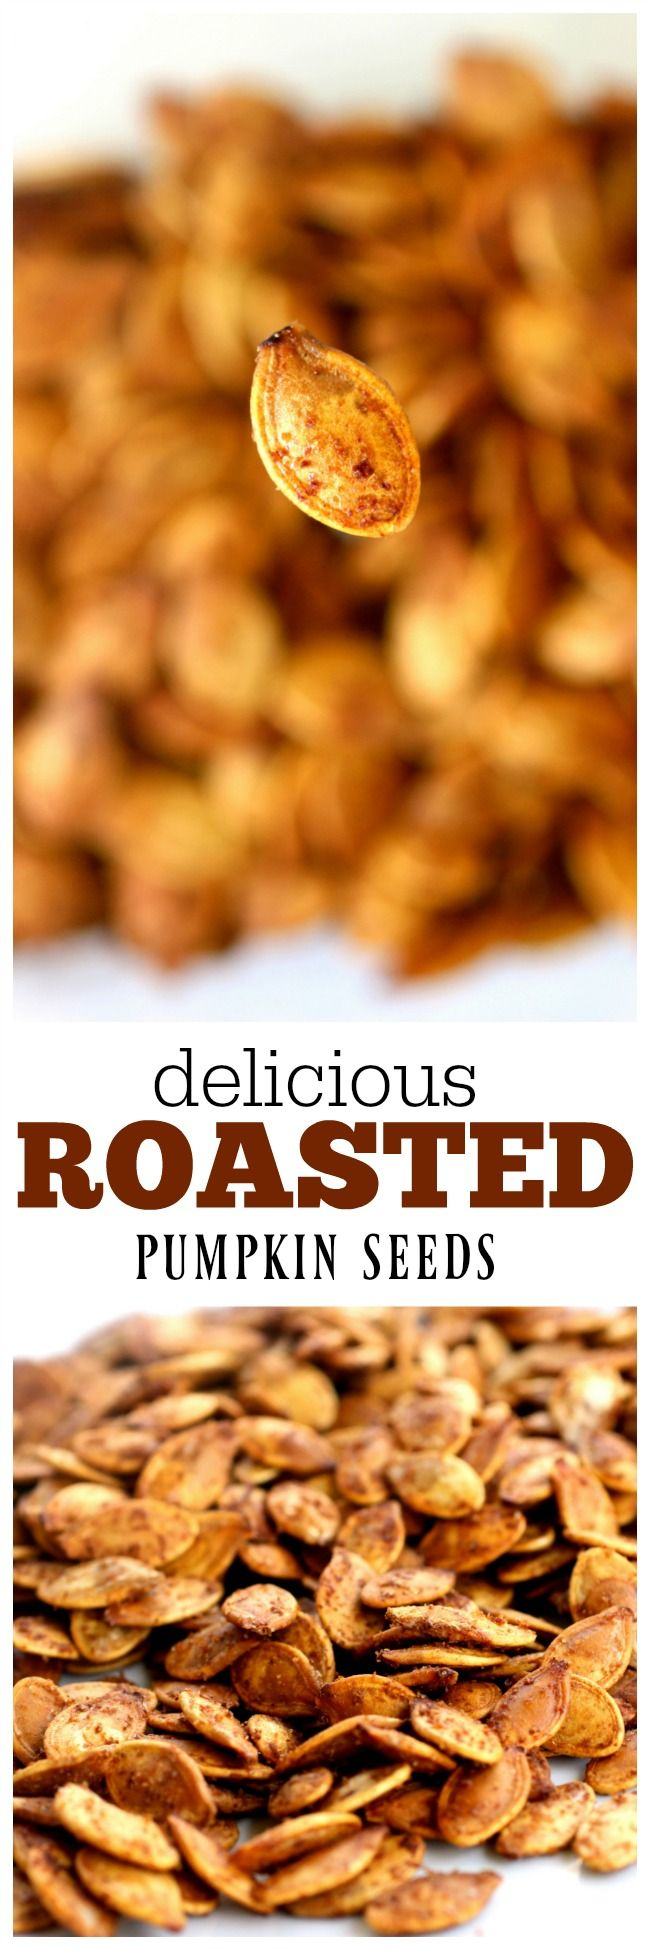 Delicious Roasted Pumpkin Seeds and how to do it!